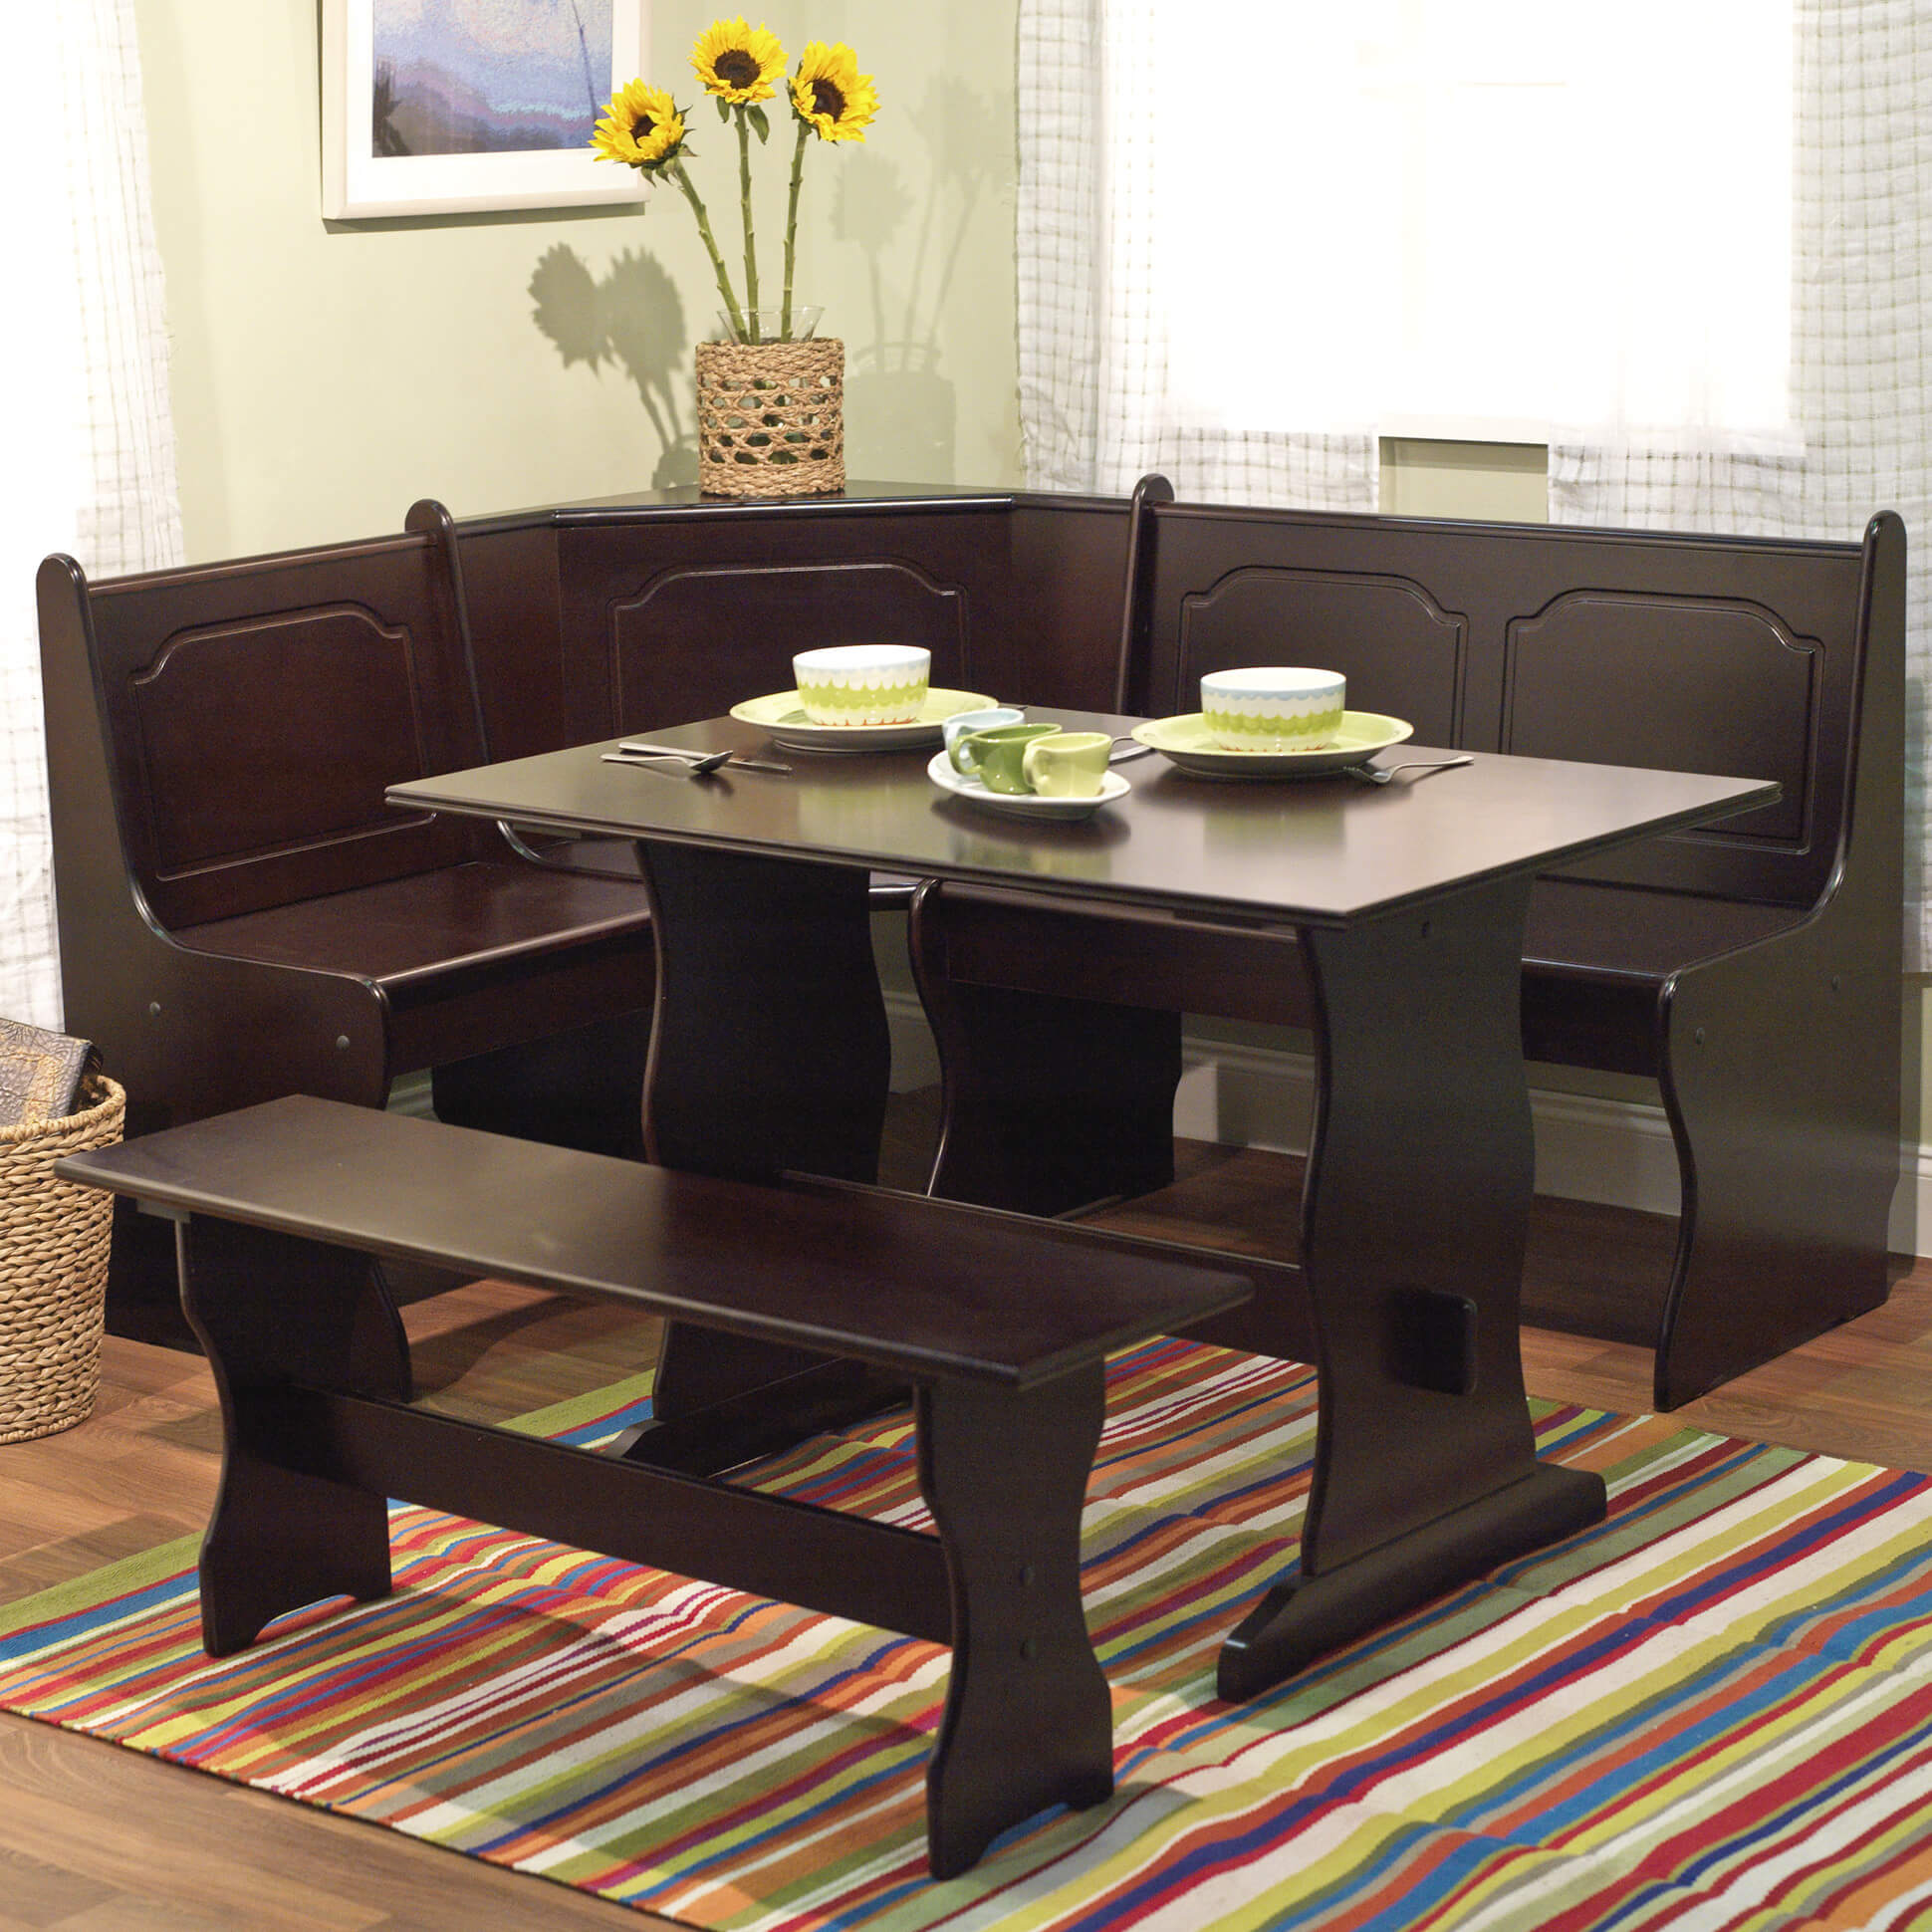 This 3 Piece Breakfast Nook Is An All Wood (manufactured Wood) Dark